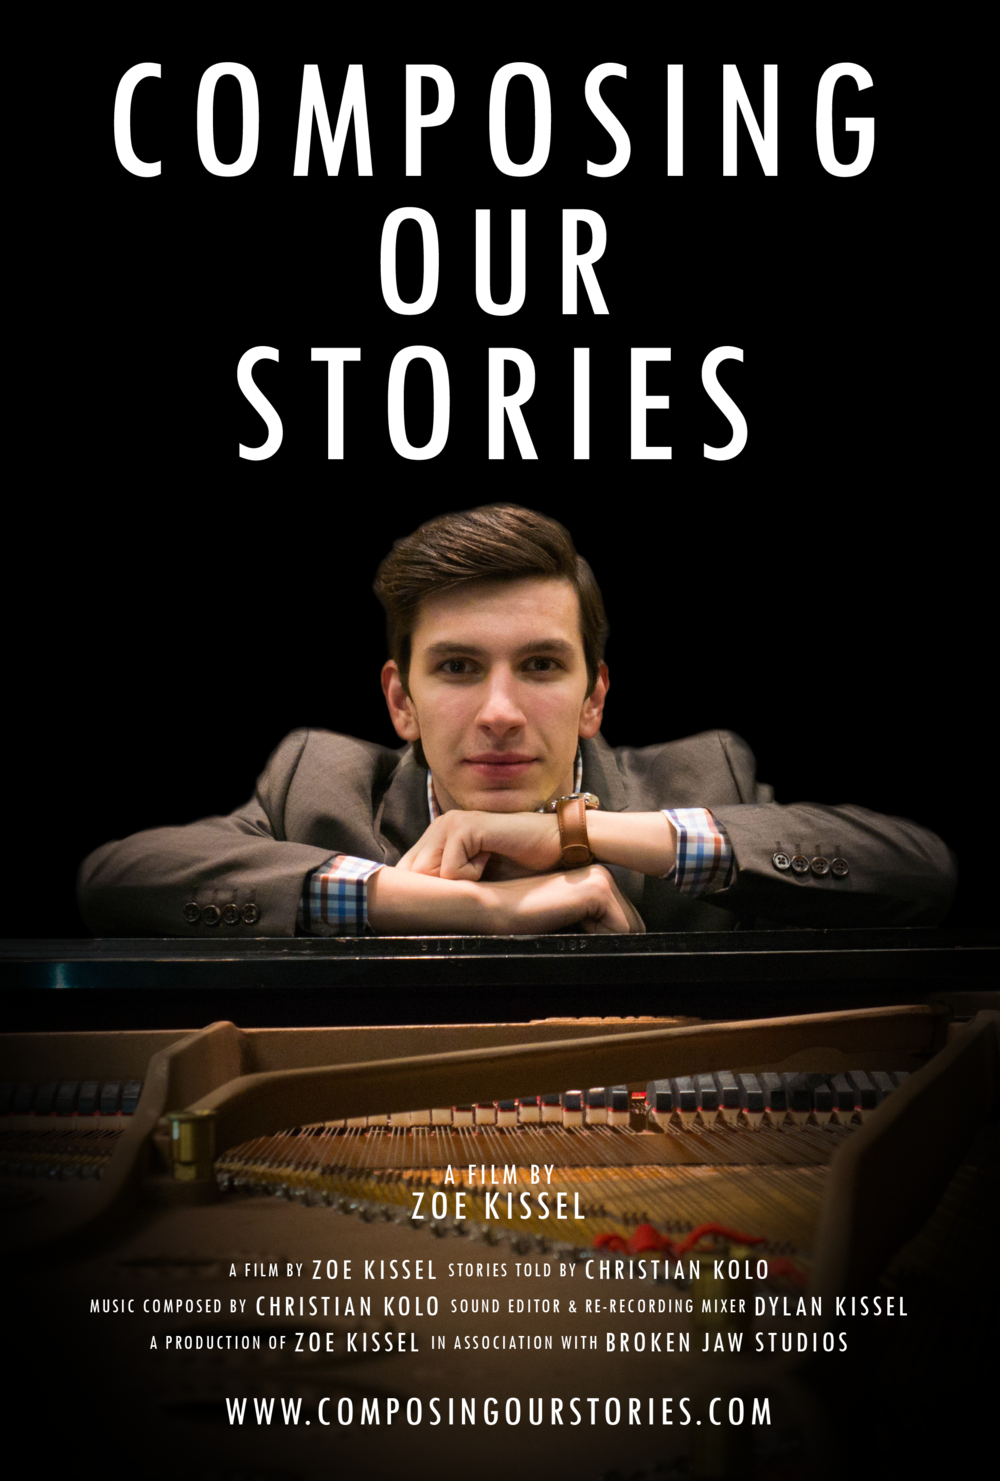 The official Composing Our Stories film poster.